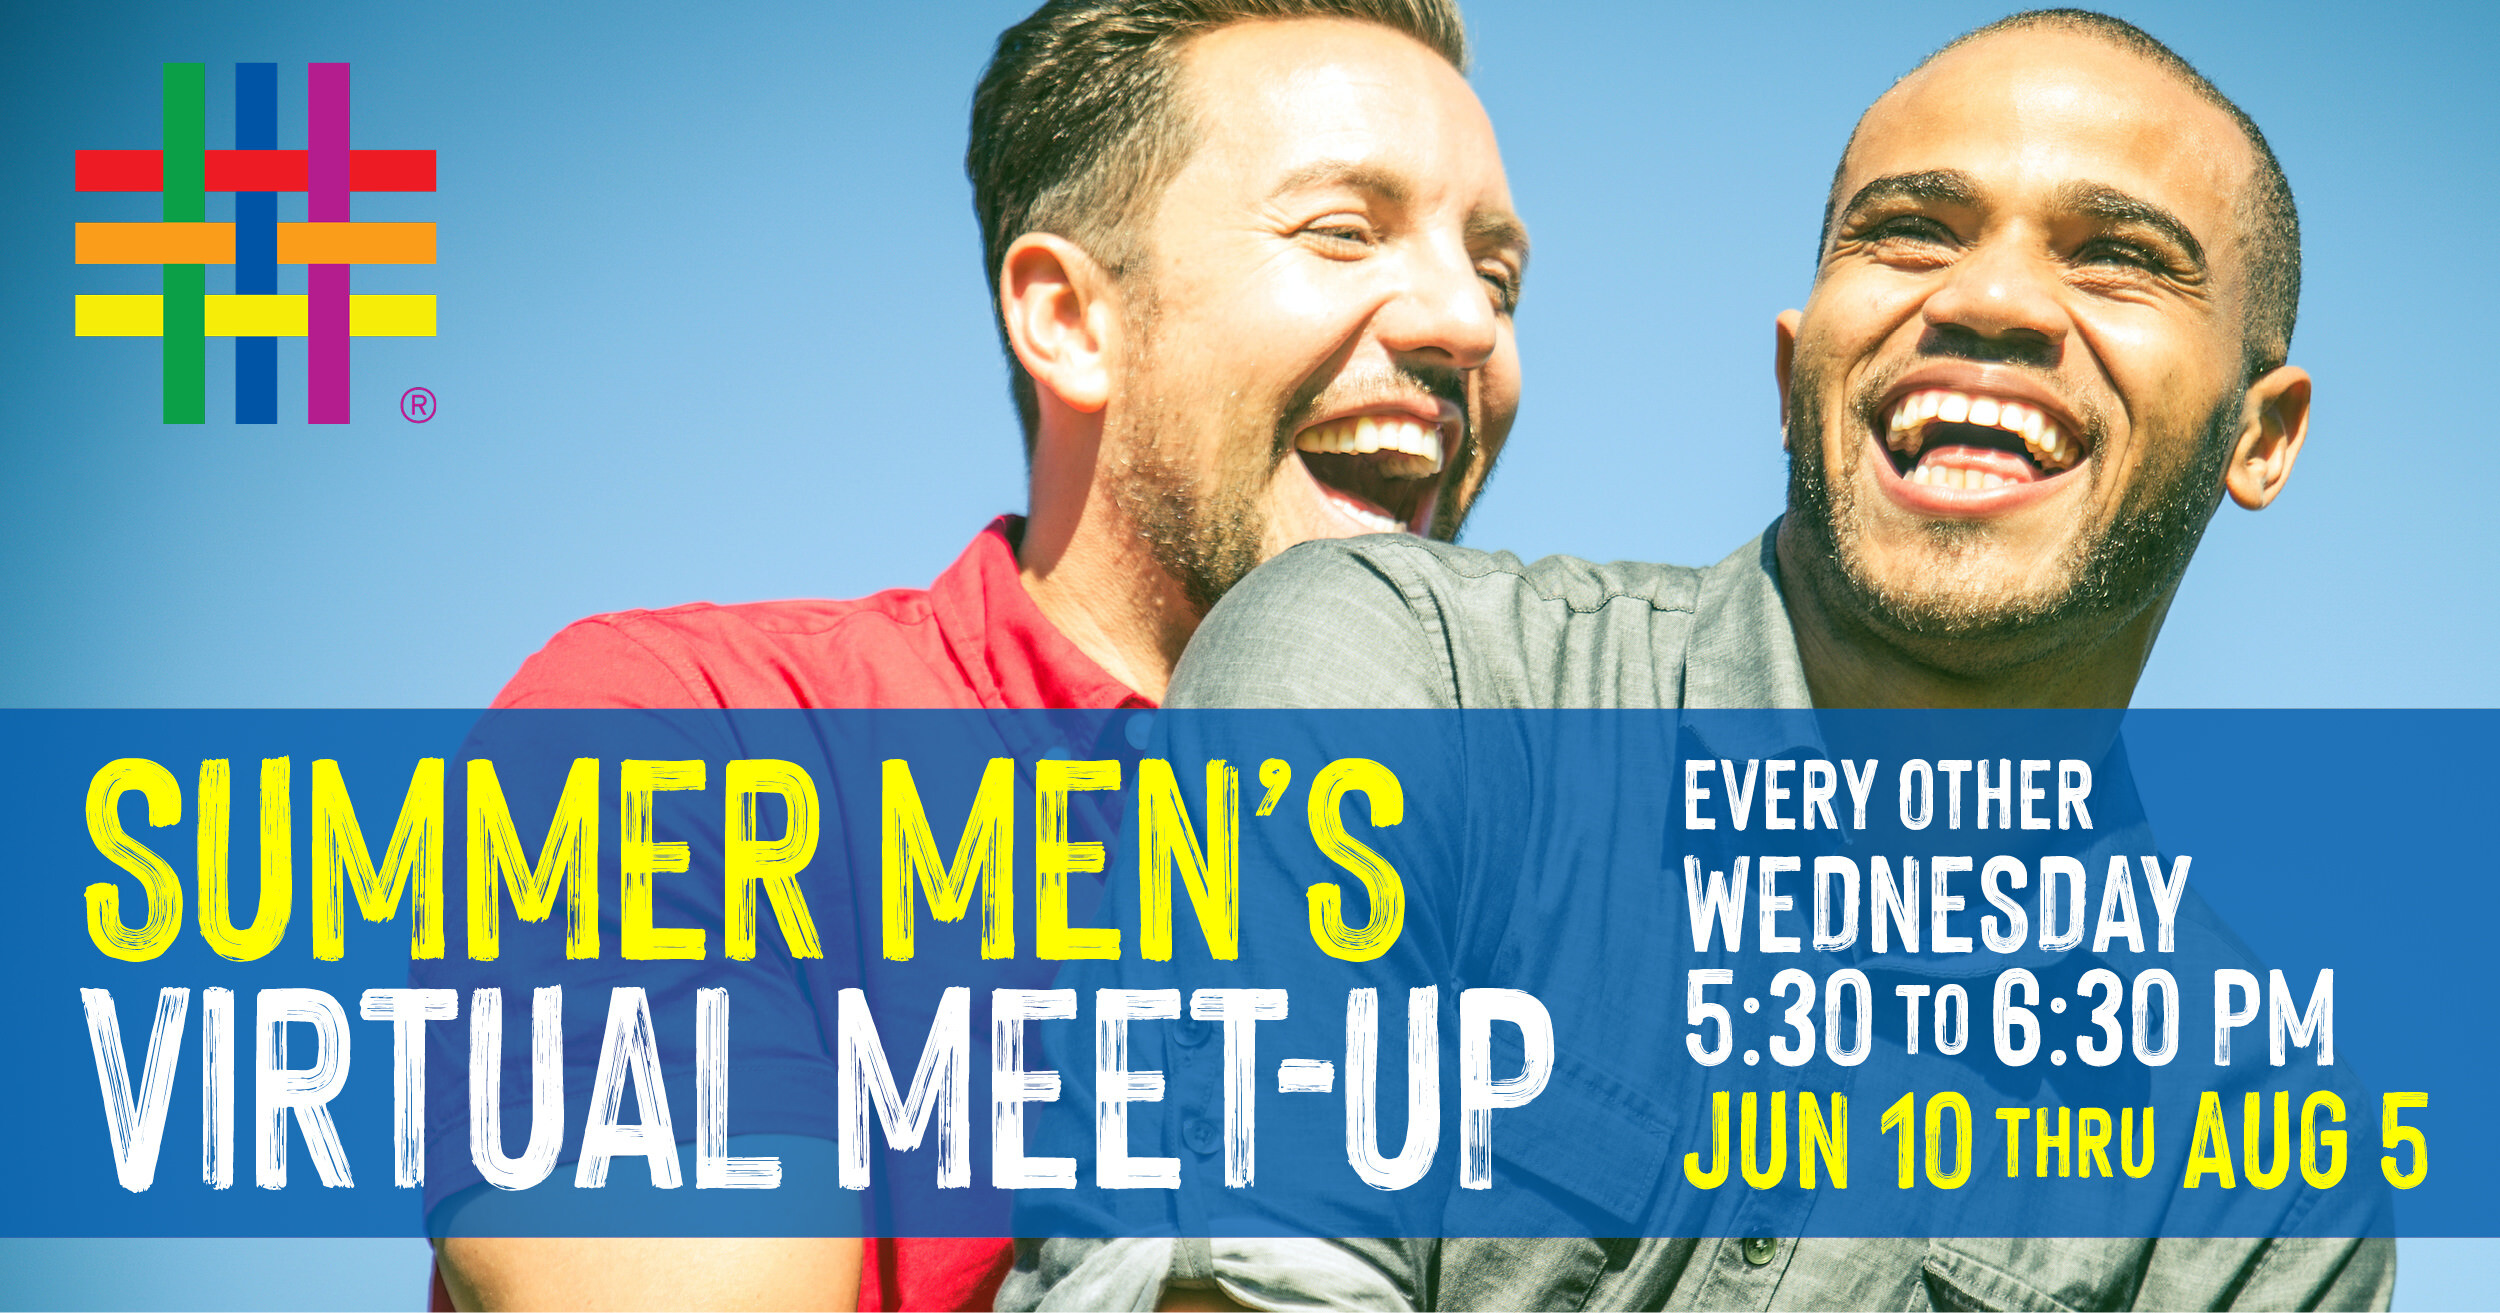 Summer Men's Virtual Meet-Up at Brooklyn Community Pride Center